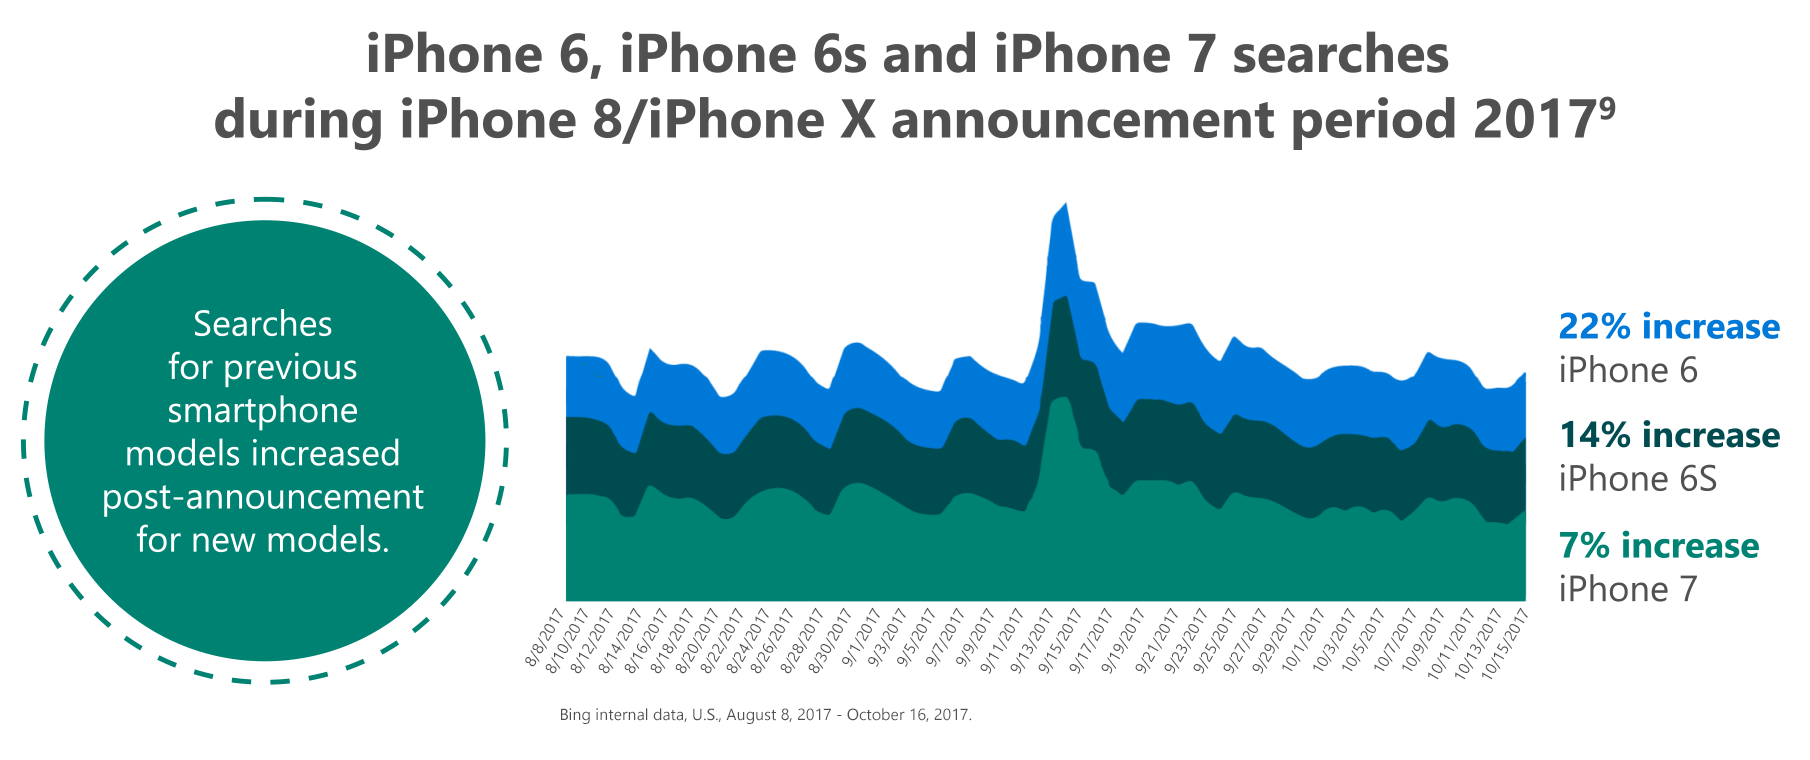 Graph #3: iPhone 6, iPhone 6s and iPhone 7 searches during iPhone 8/iPhone X announcement period 2017